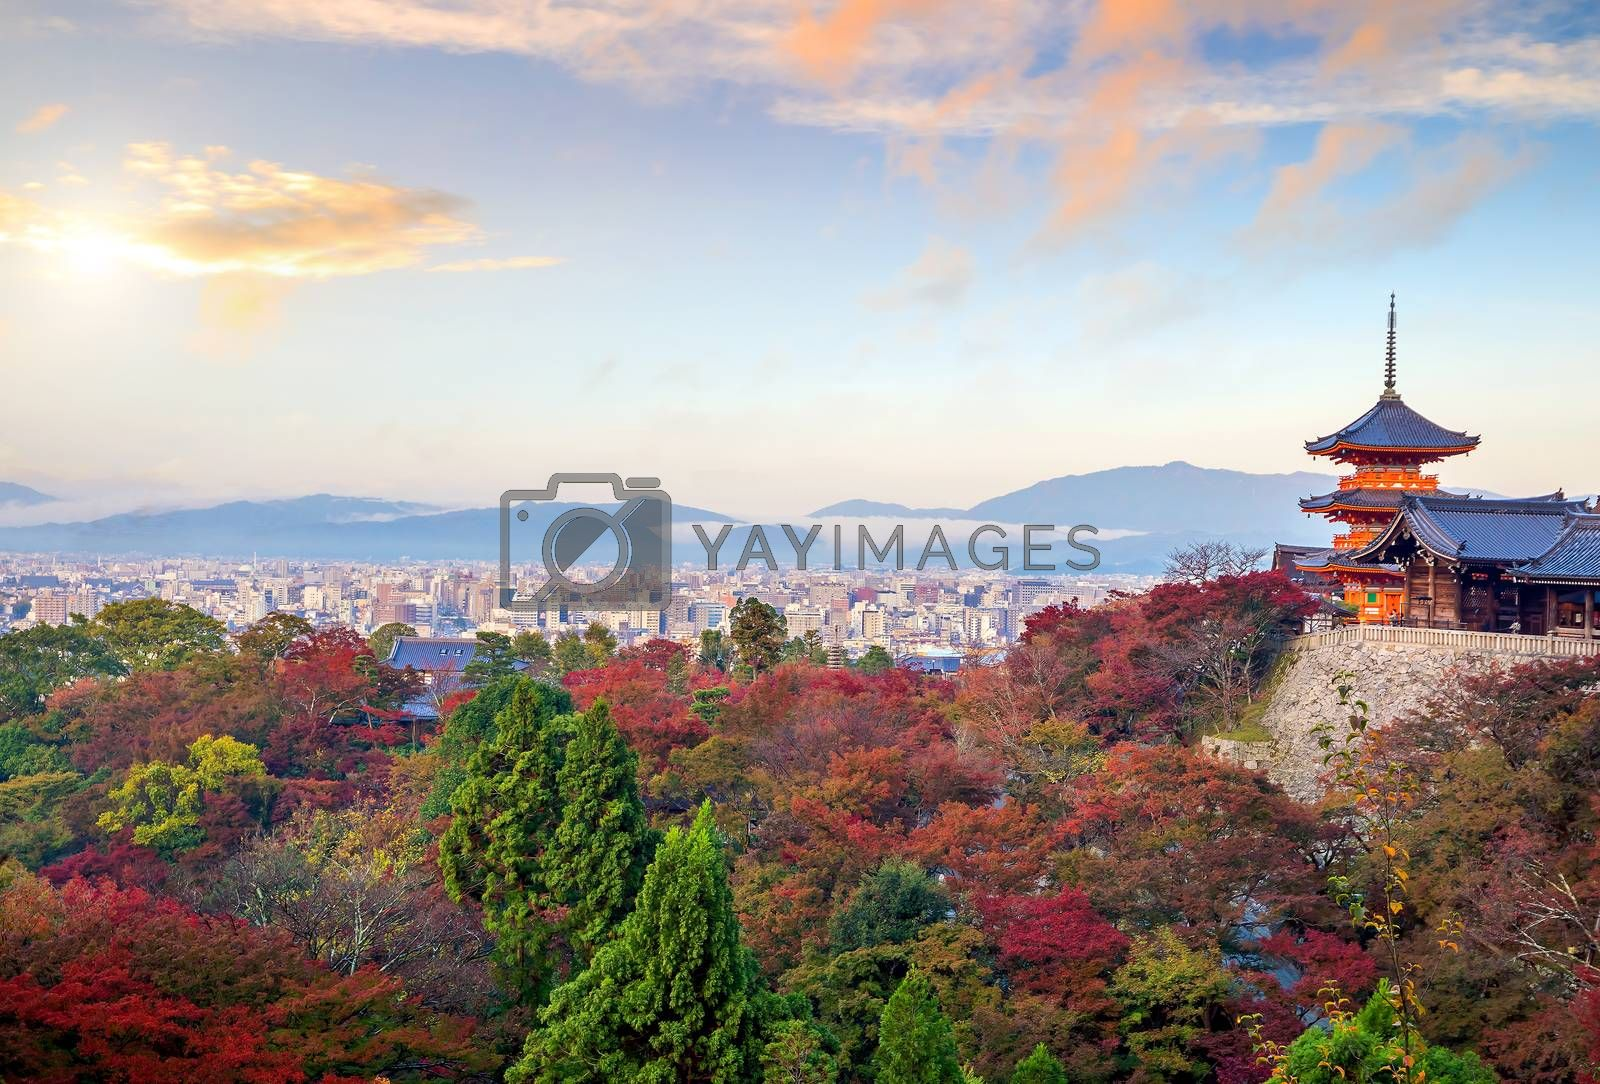 Royalty free image of Autumn Color of Kyoto skyline and Kiyomizu-dera Temple in Kyoto by f11photo